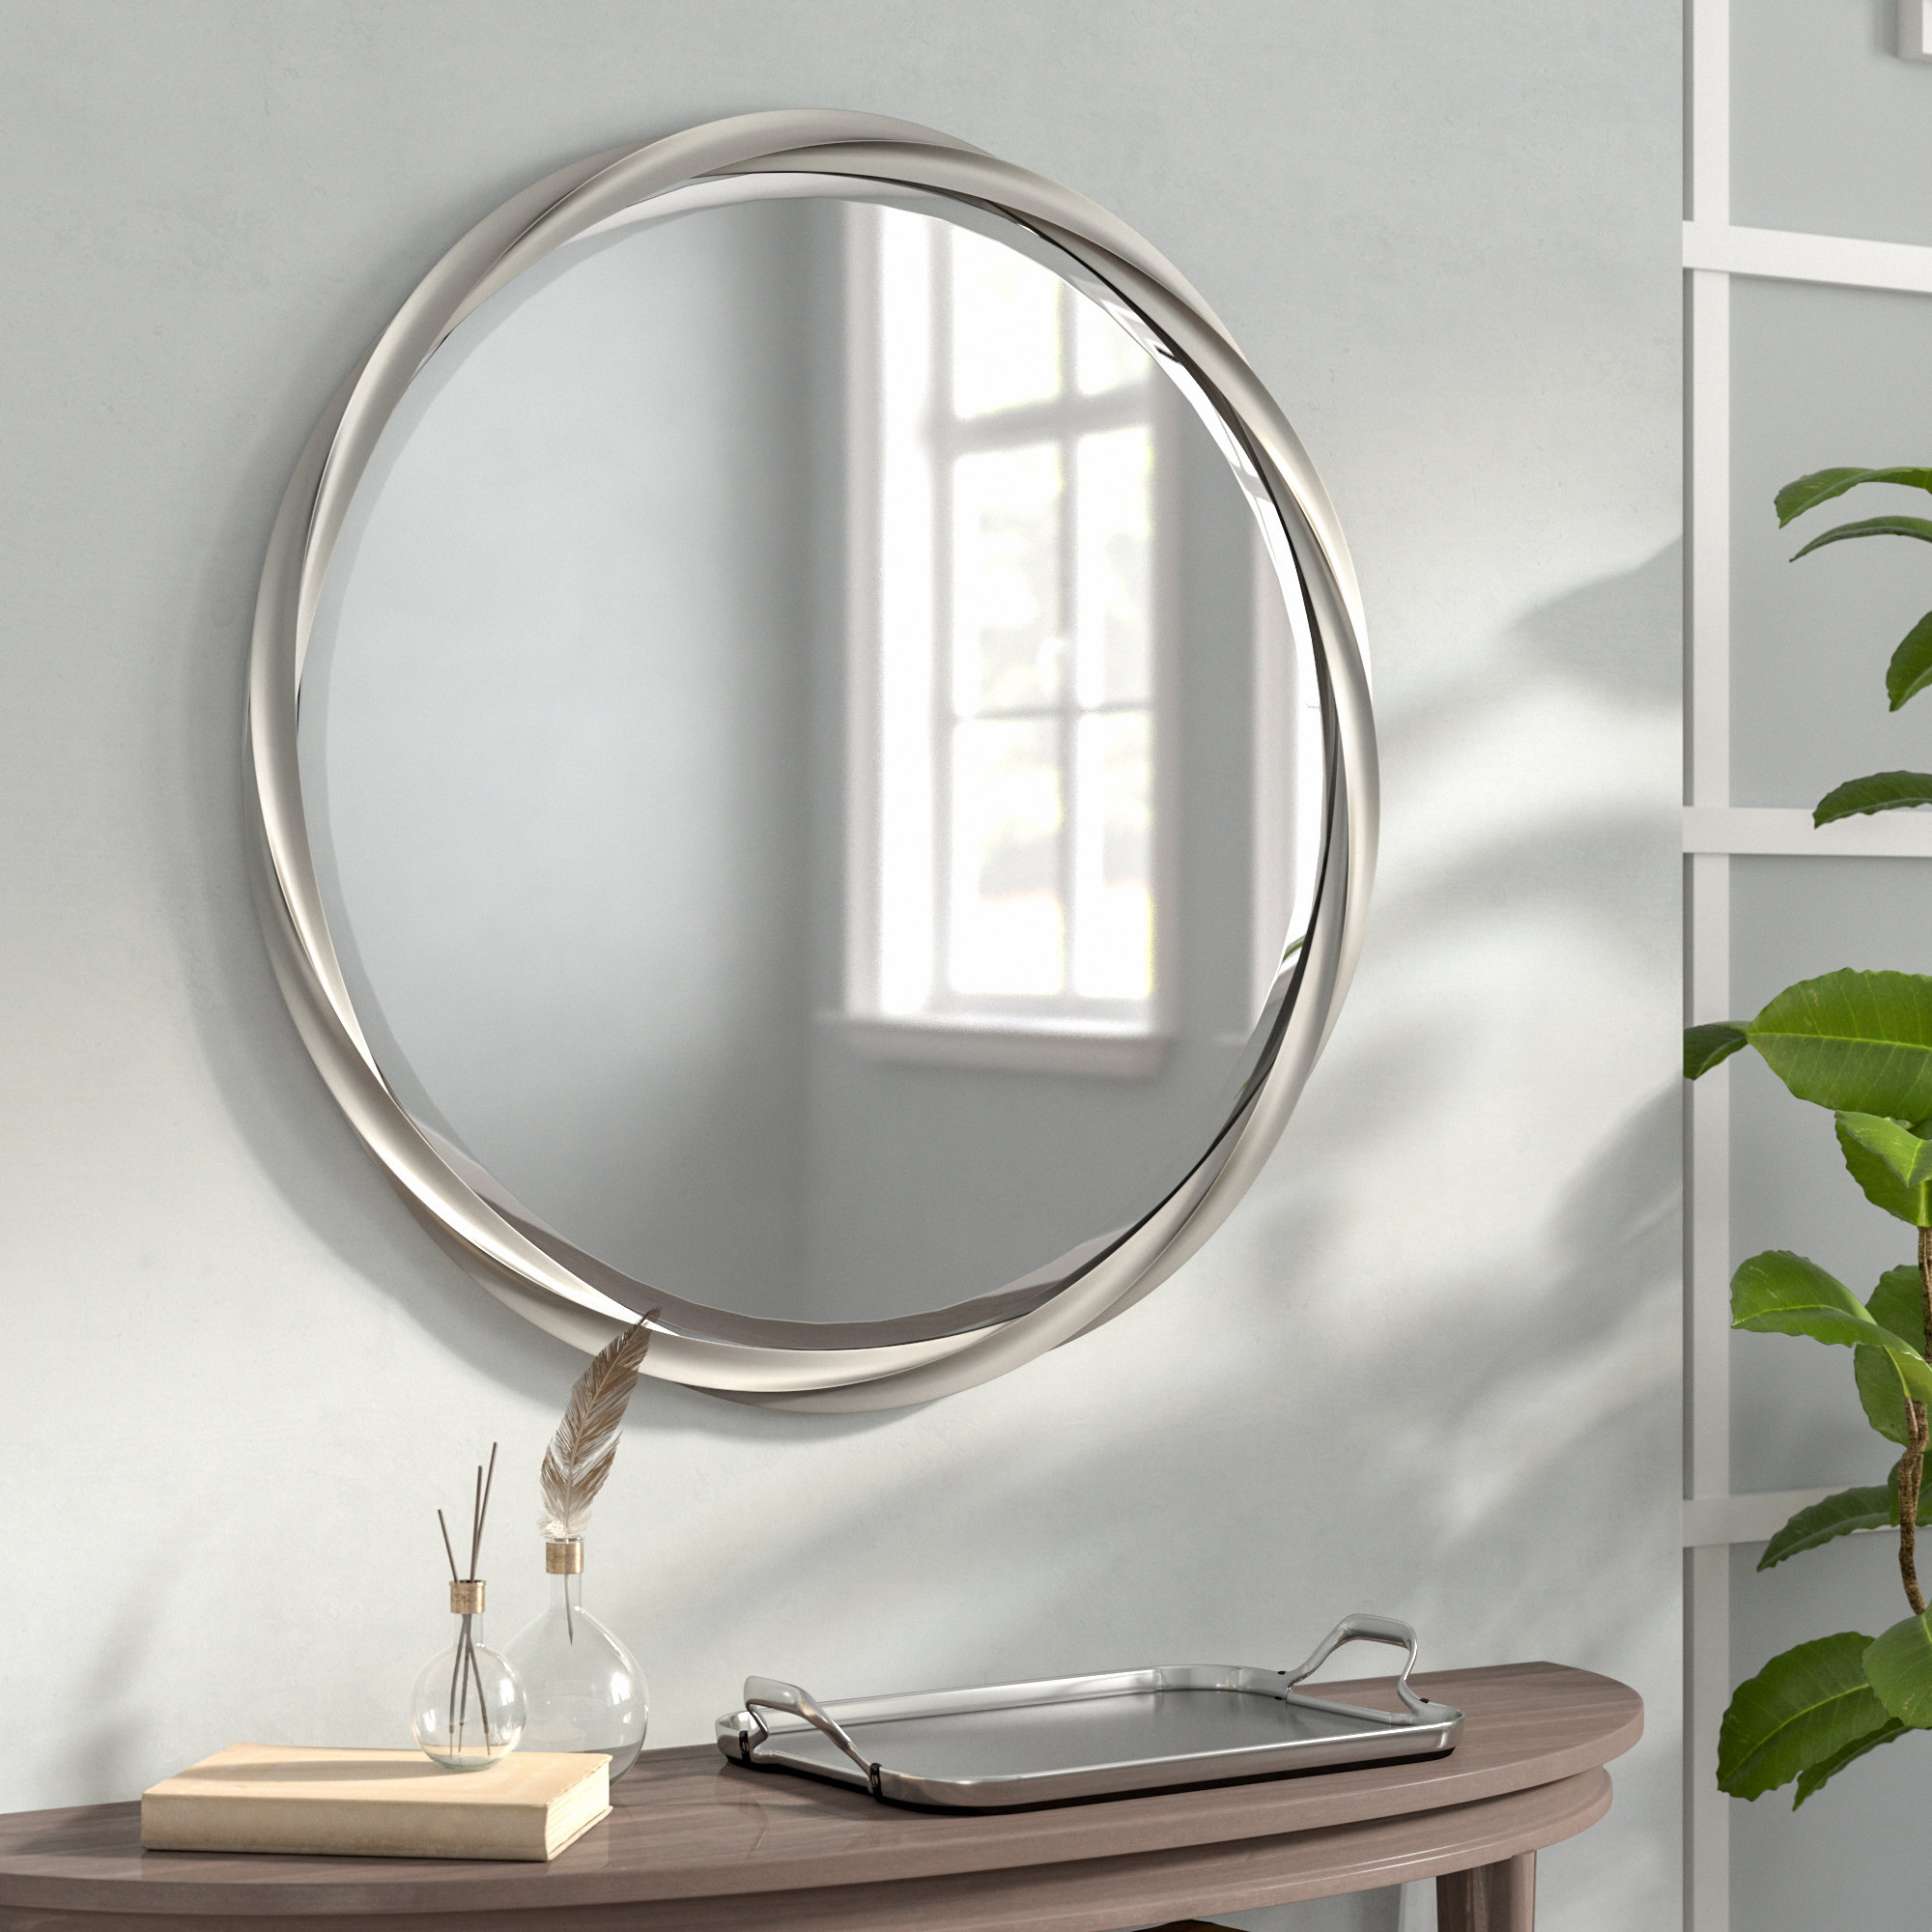 Beveled Round Mirrors You'll Love In 2019 | Wayfair Inside Kayden Accent Mirrors (View 11 of 20)